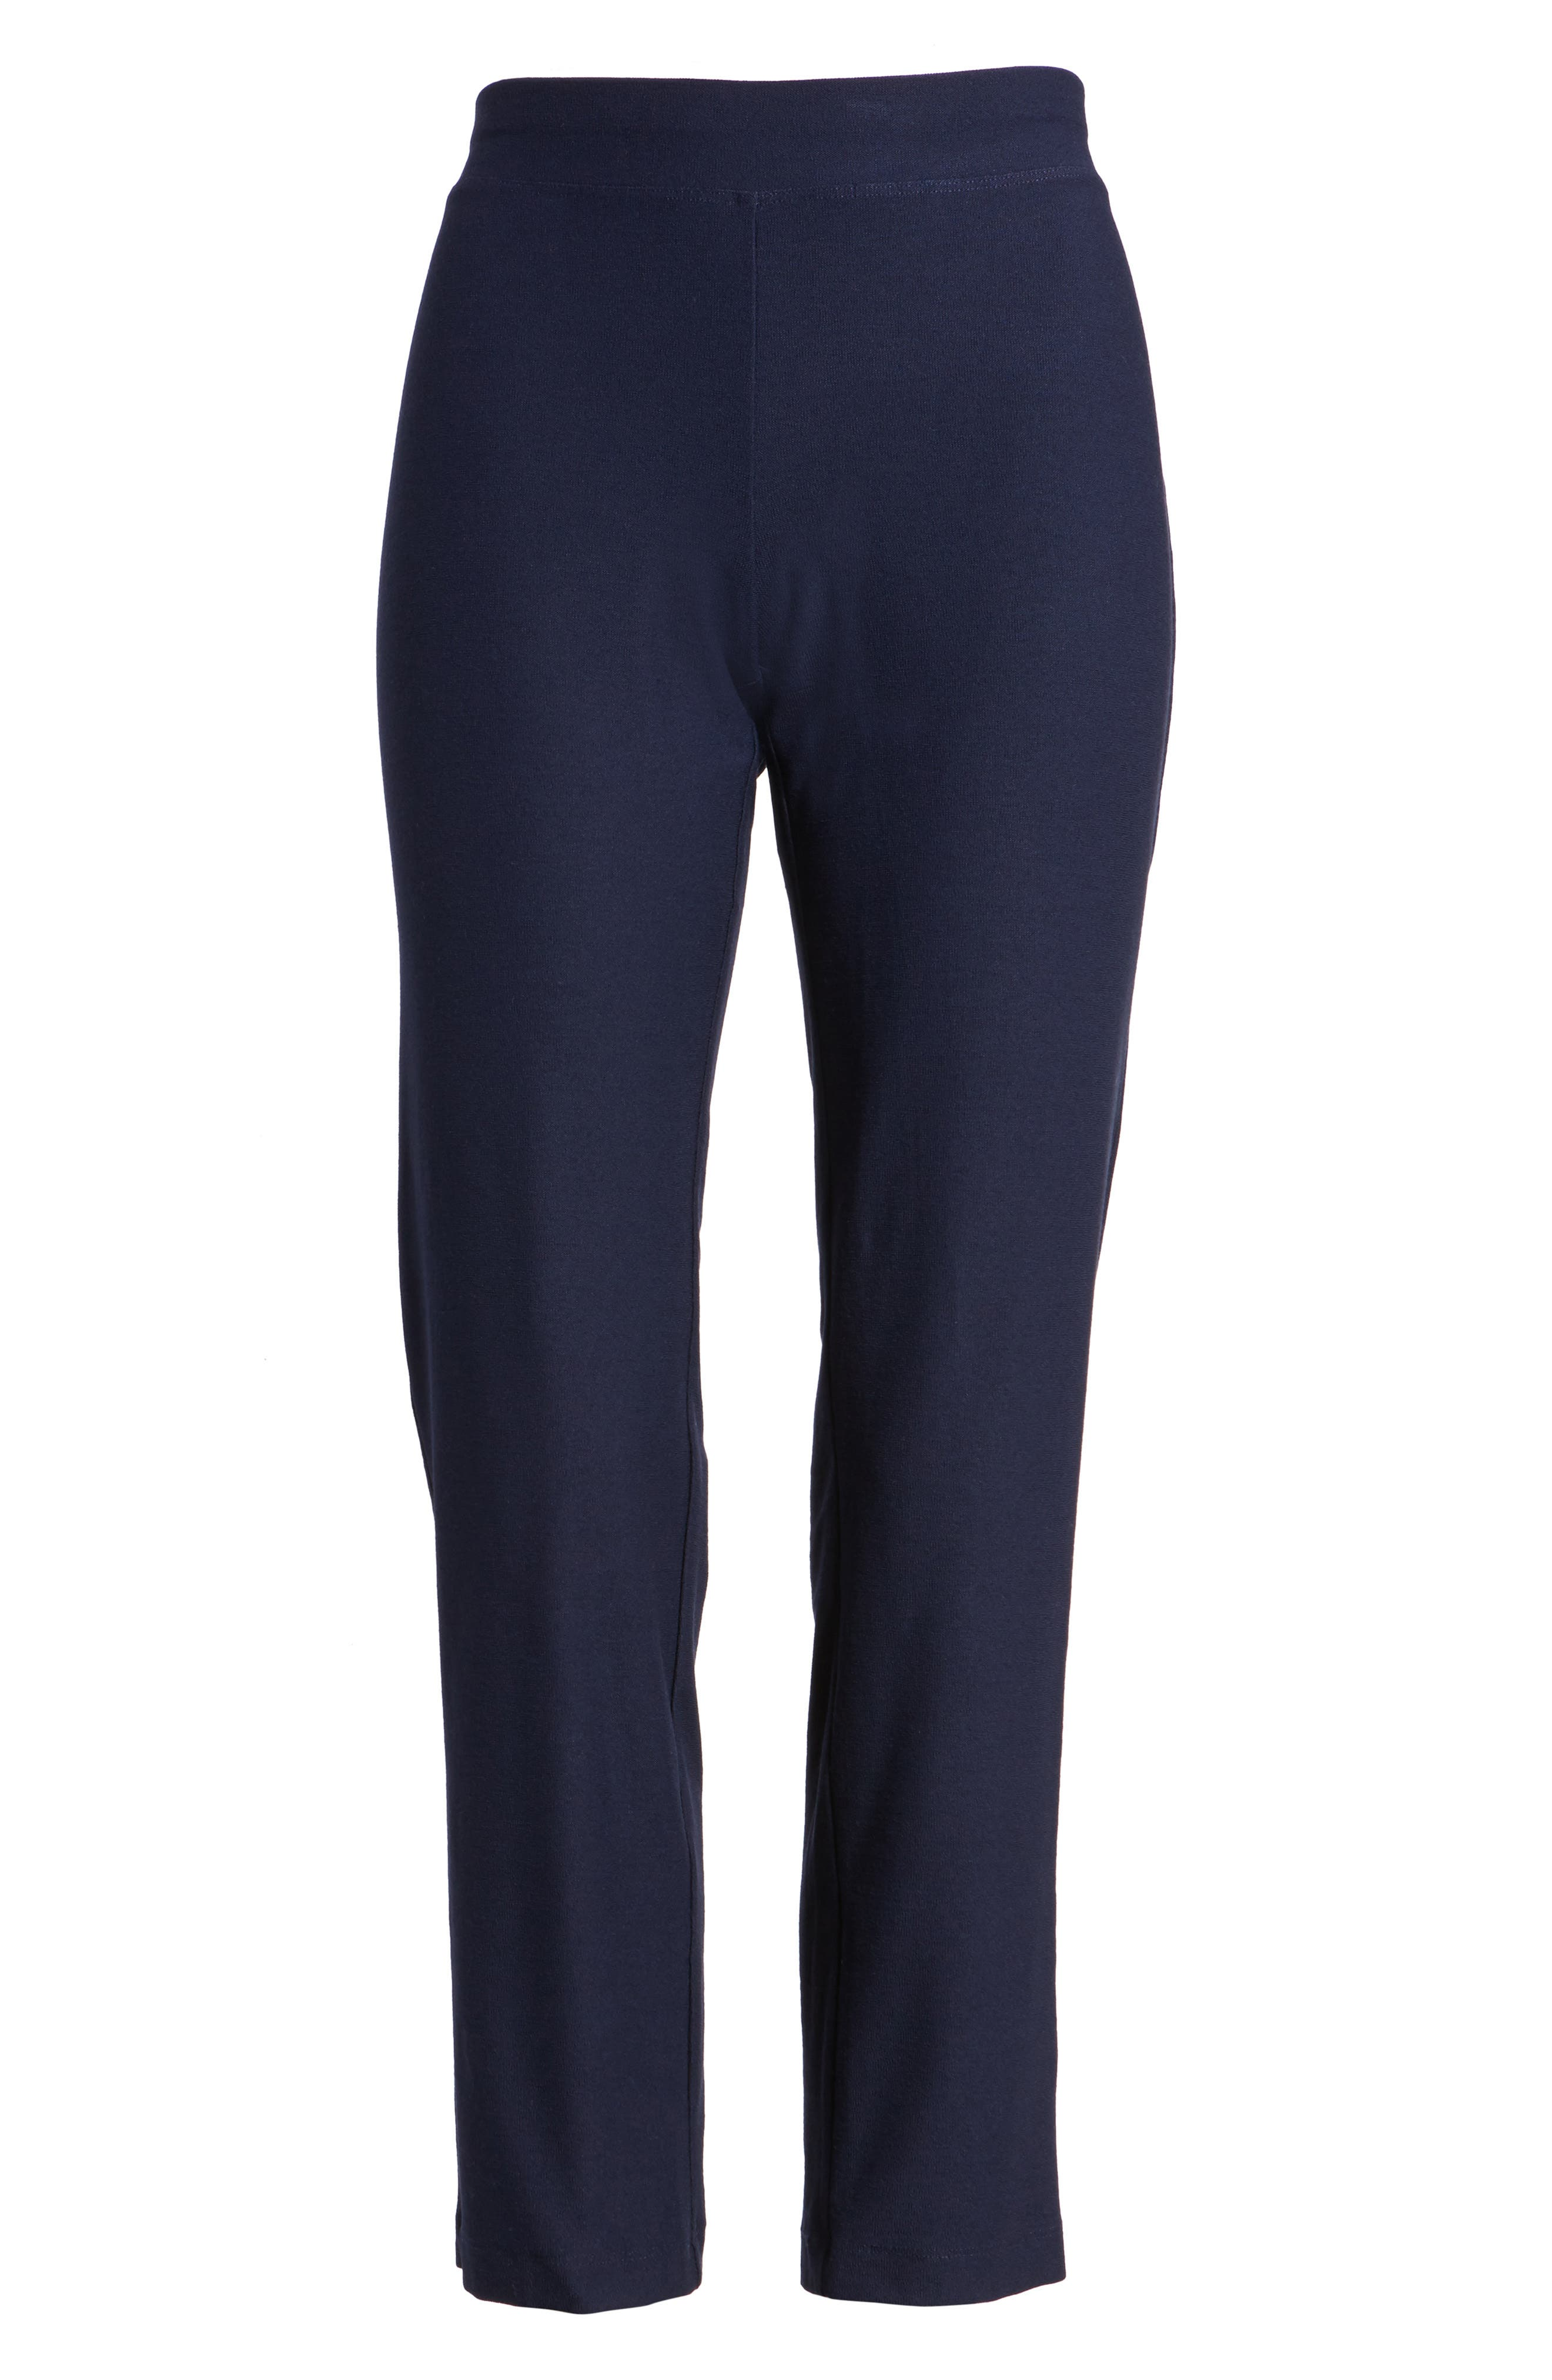 Stretch Crepe Slim Ankle Pants,                             Alternate thumbnail 7, color,                             MIDNIGHT